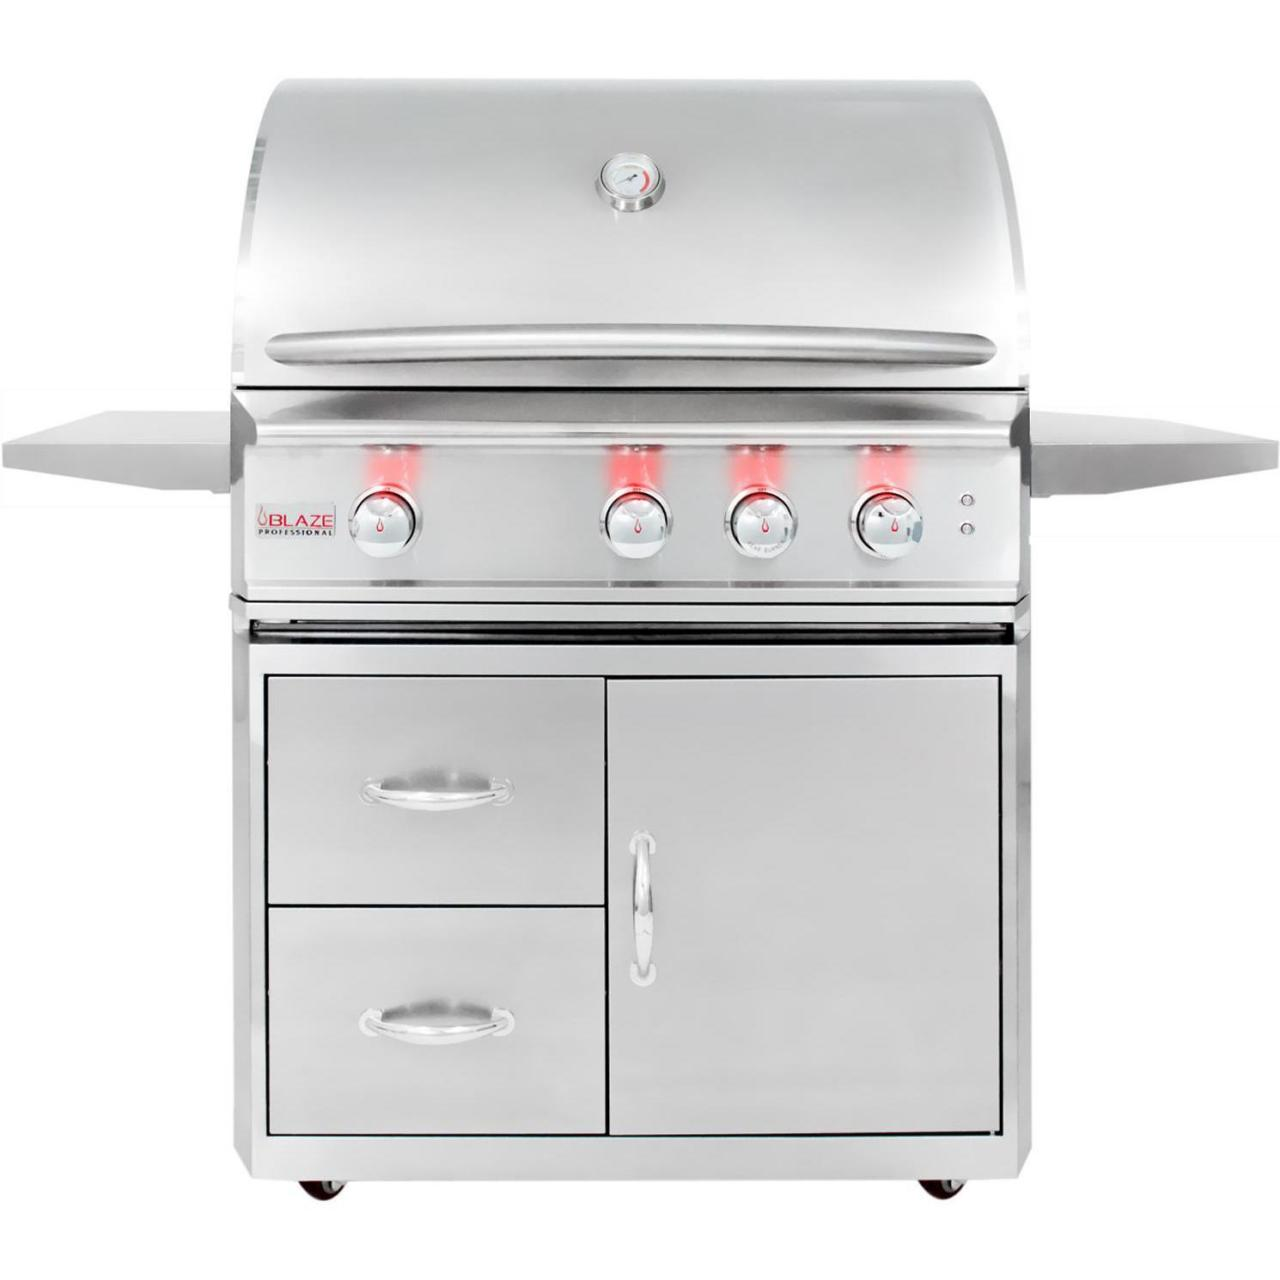 Quality Blaze Professional 34-Inch Freestanding Propane Gas Grill With Rear Infrared Burner for sale